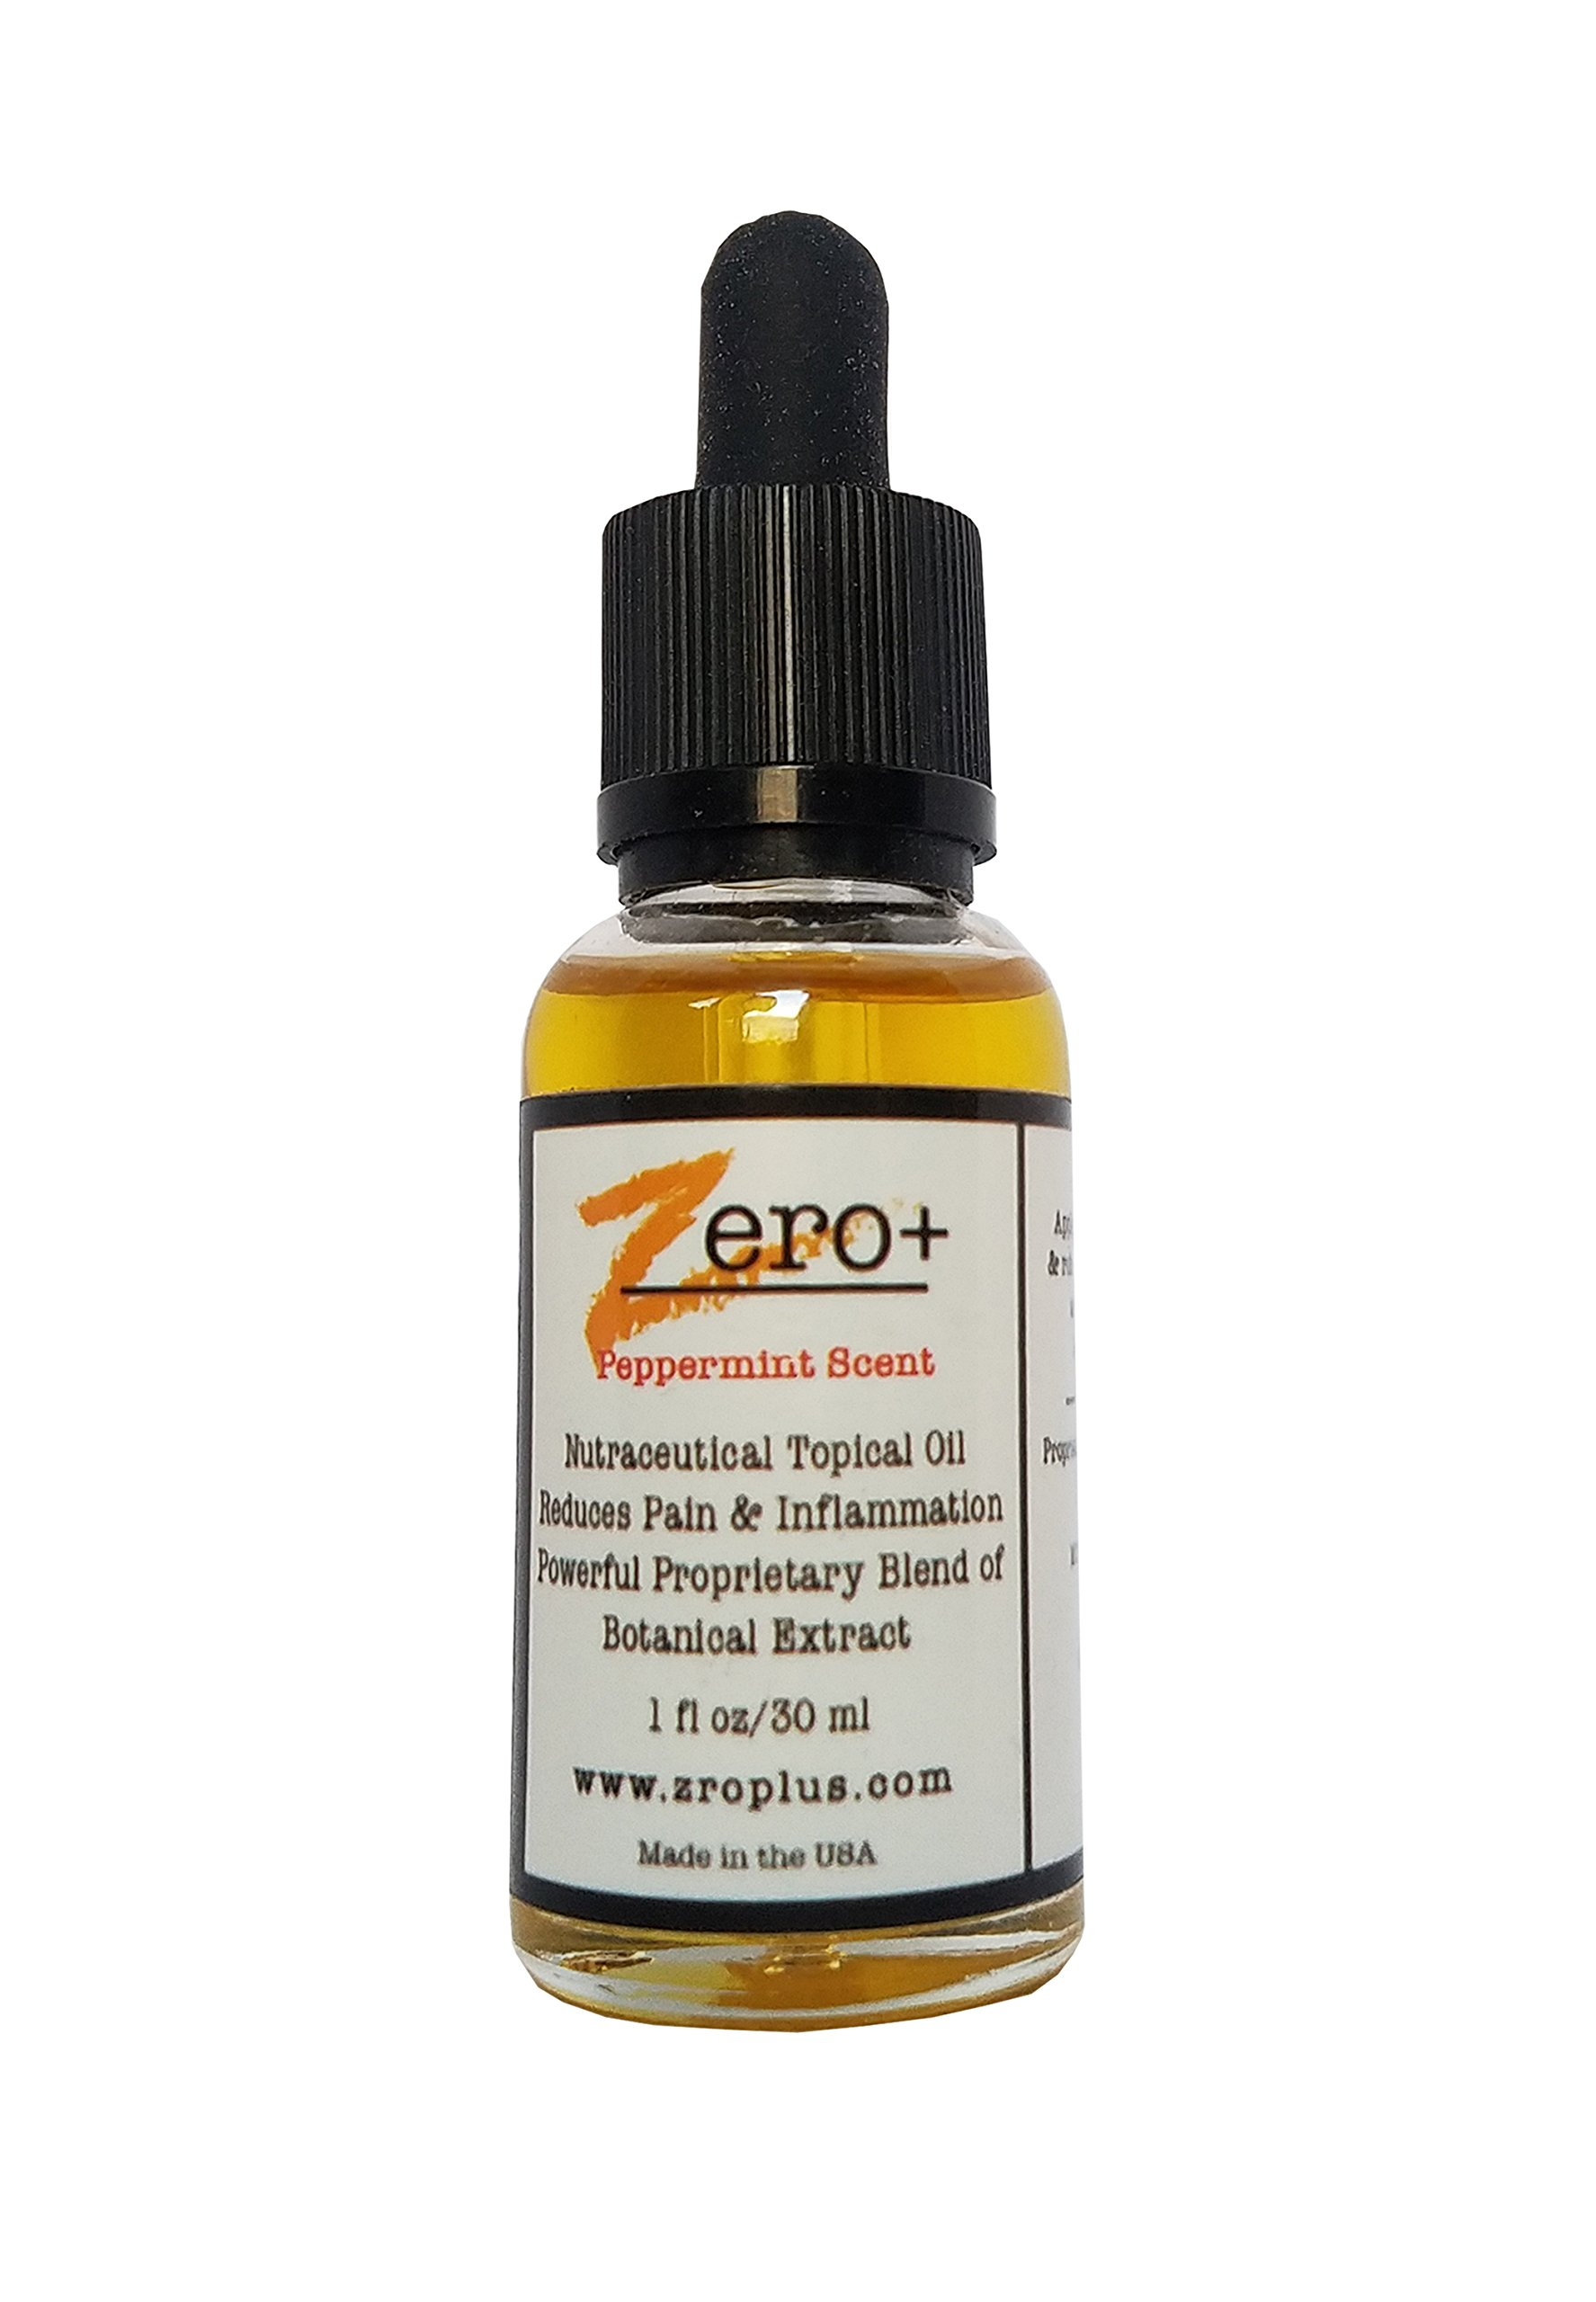 Instant Pain Relief Topical Oil by Zero+